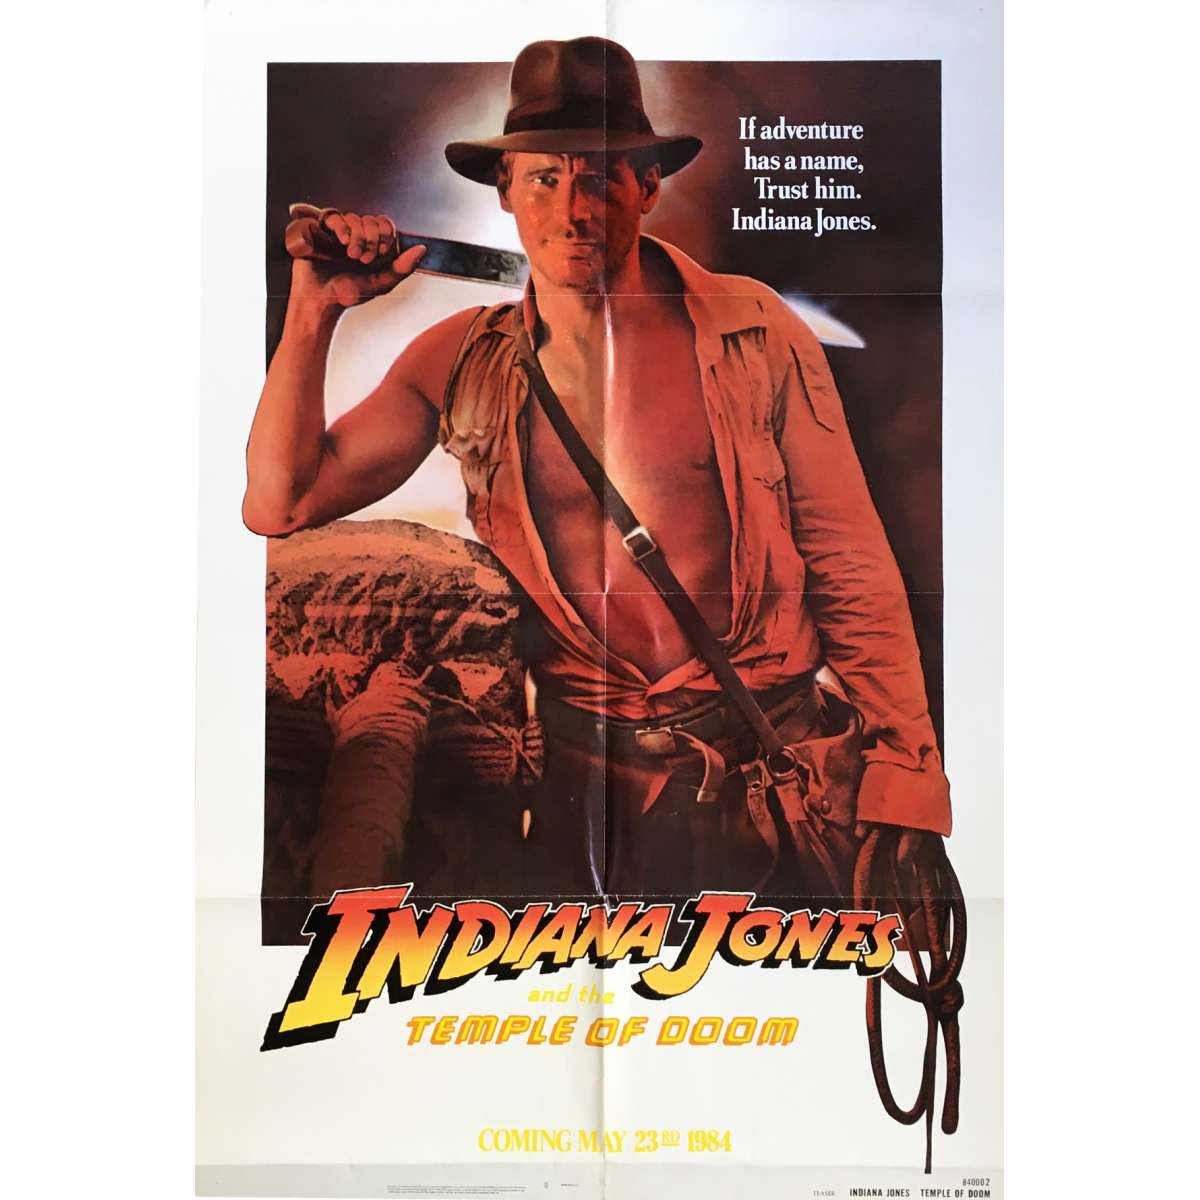 indiana jones and the temple of doom movie poster rejected version 29x41 in 1984 steven spielberg harrison ford